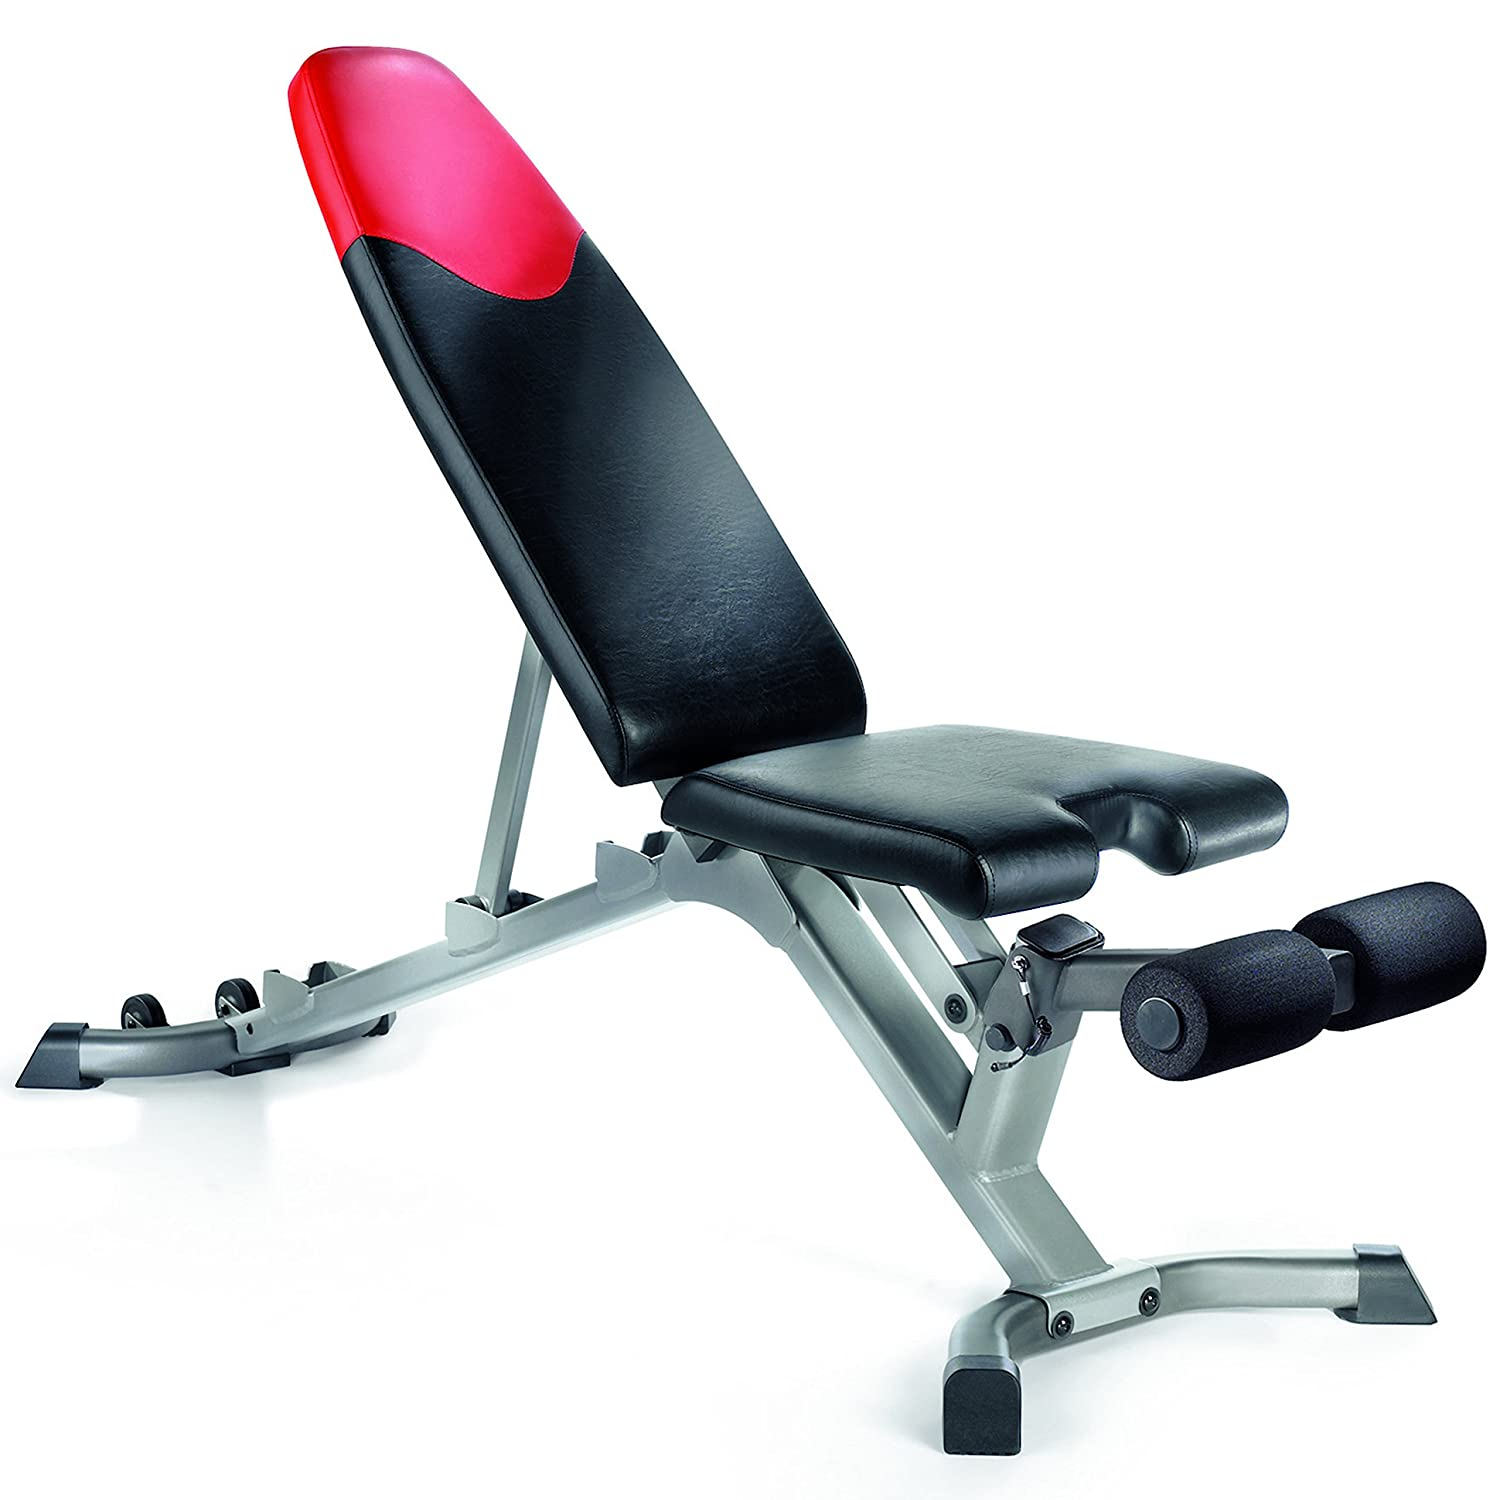 Bowflex Weight Bench ONLY $99.